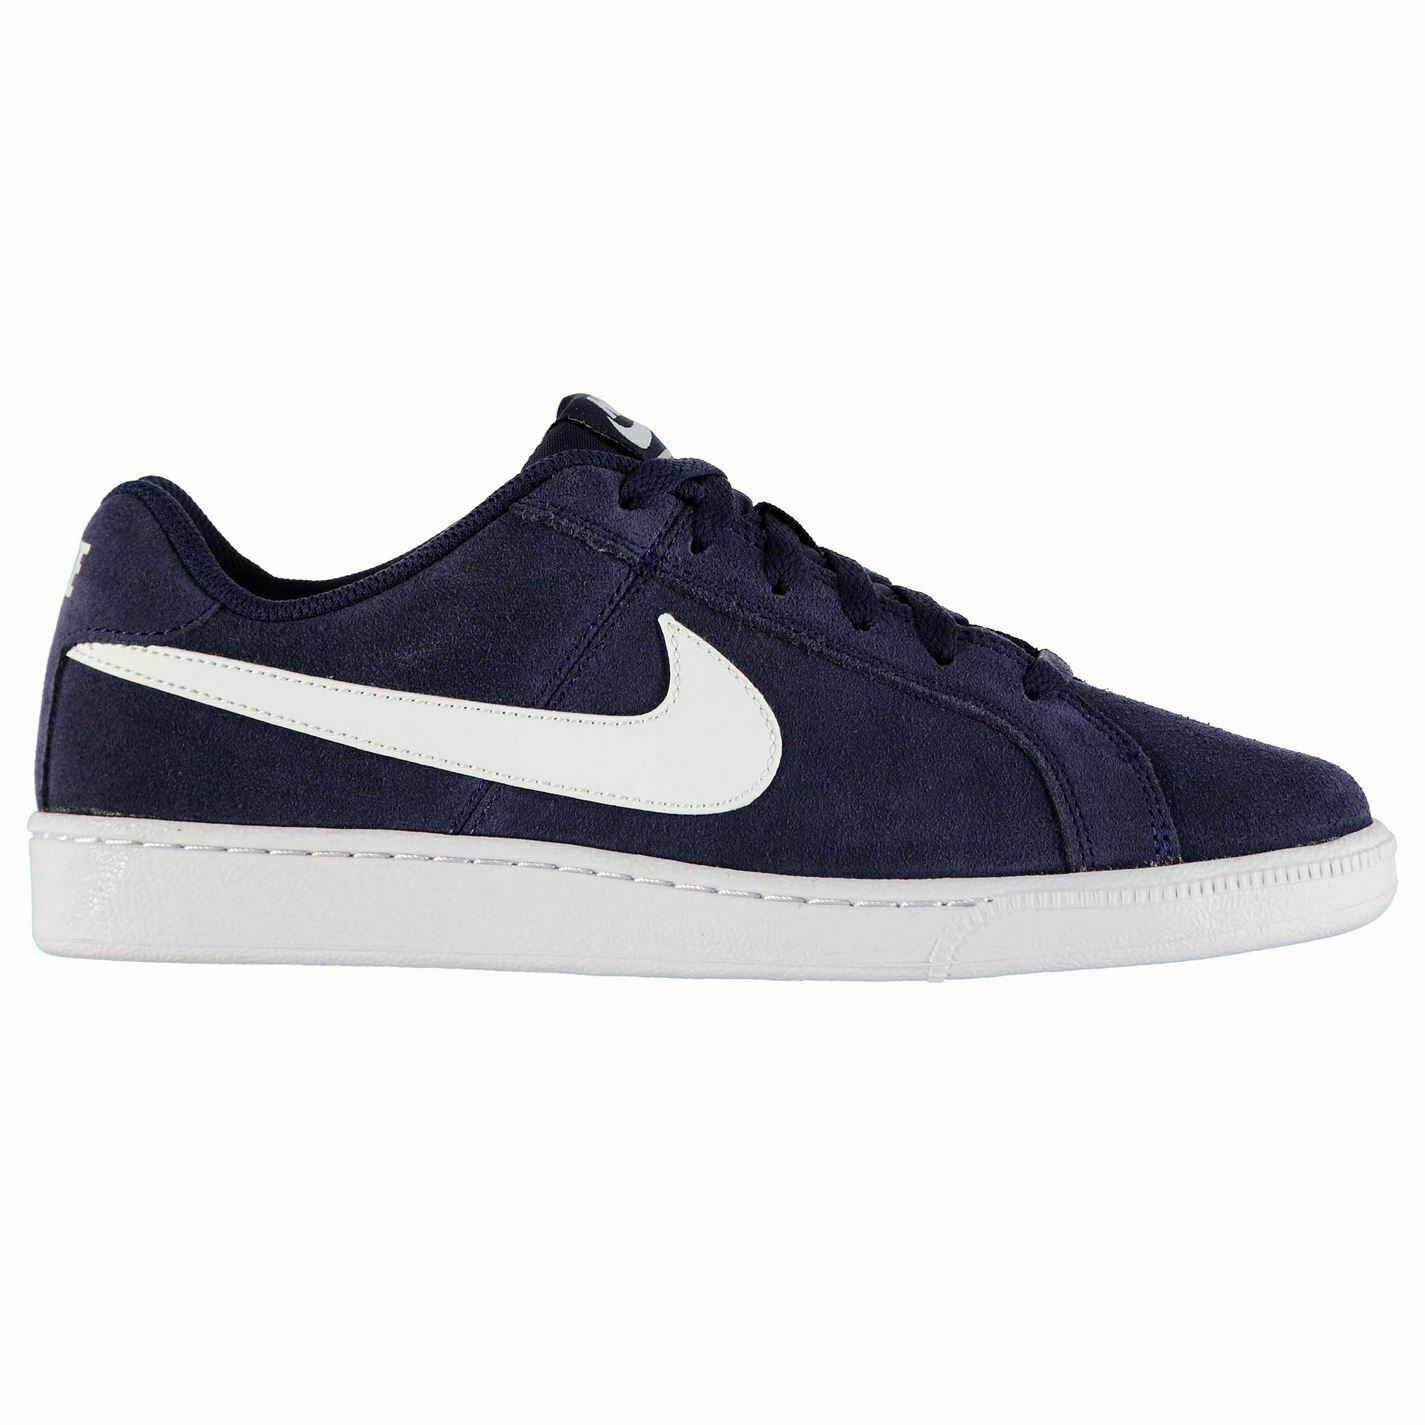 size 40 8be91 a0d4e Nike Court Royale Trainers Mens Navy White Sports shoes Sneakers Footwear